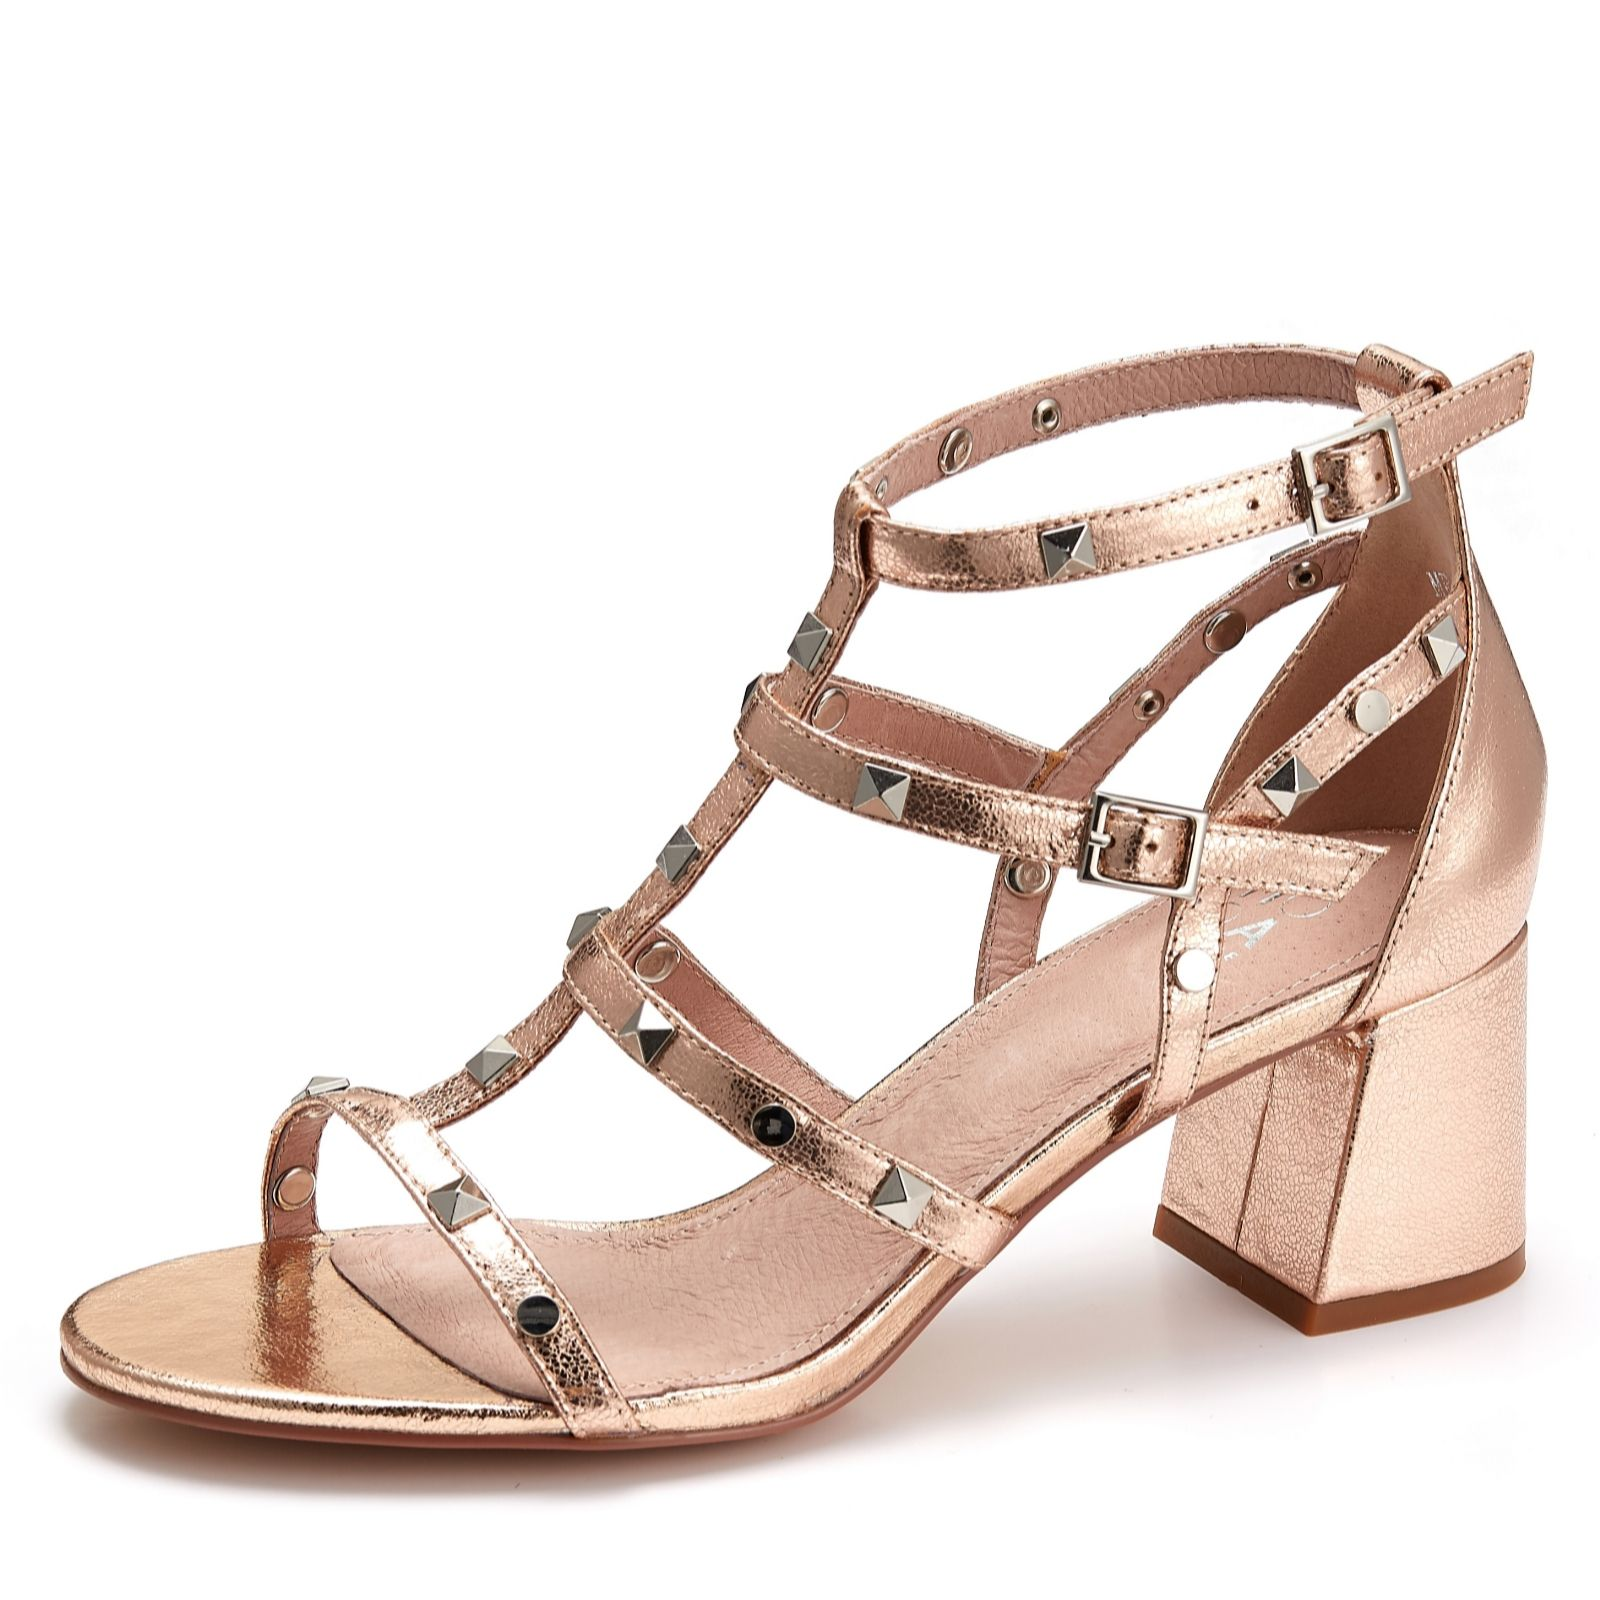 cdd81d05b33 Moda in Pelle Meana Stud Sandal - QVC UK